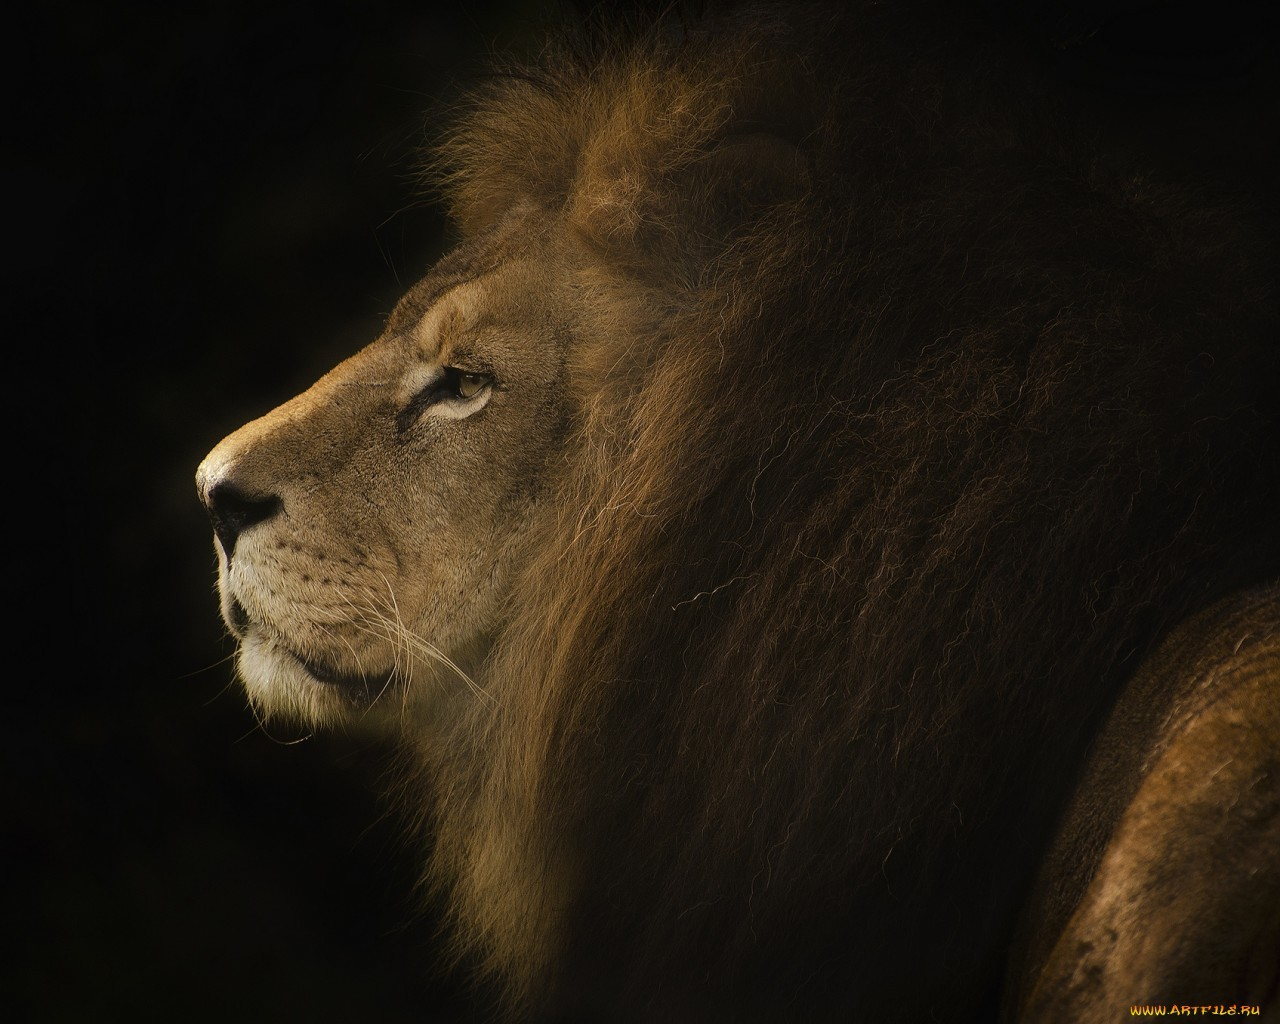 18468 download wallpaper Animals, Lions screensavers and pictures for free